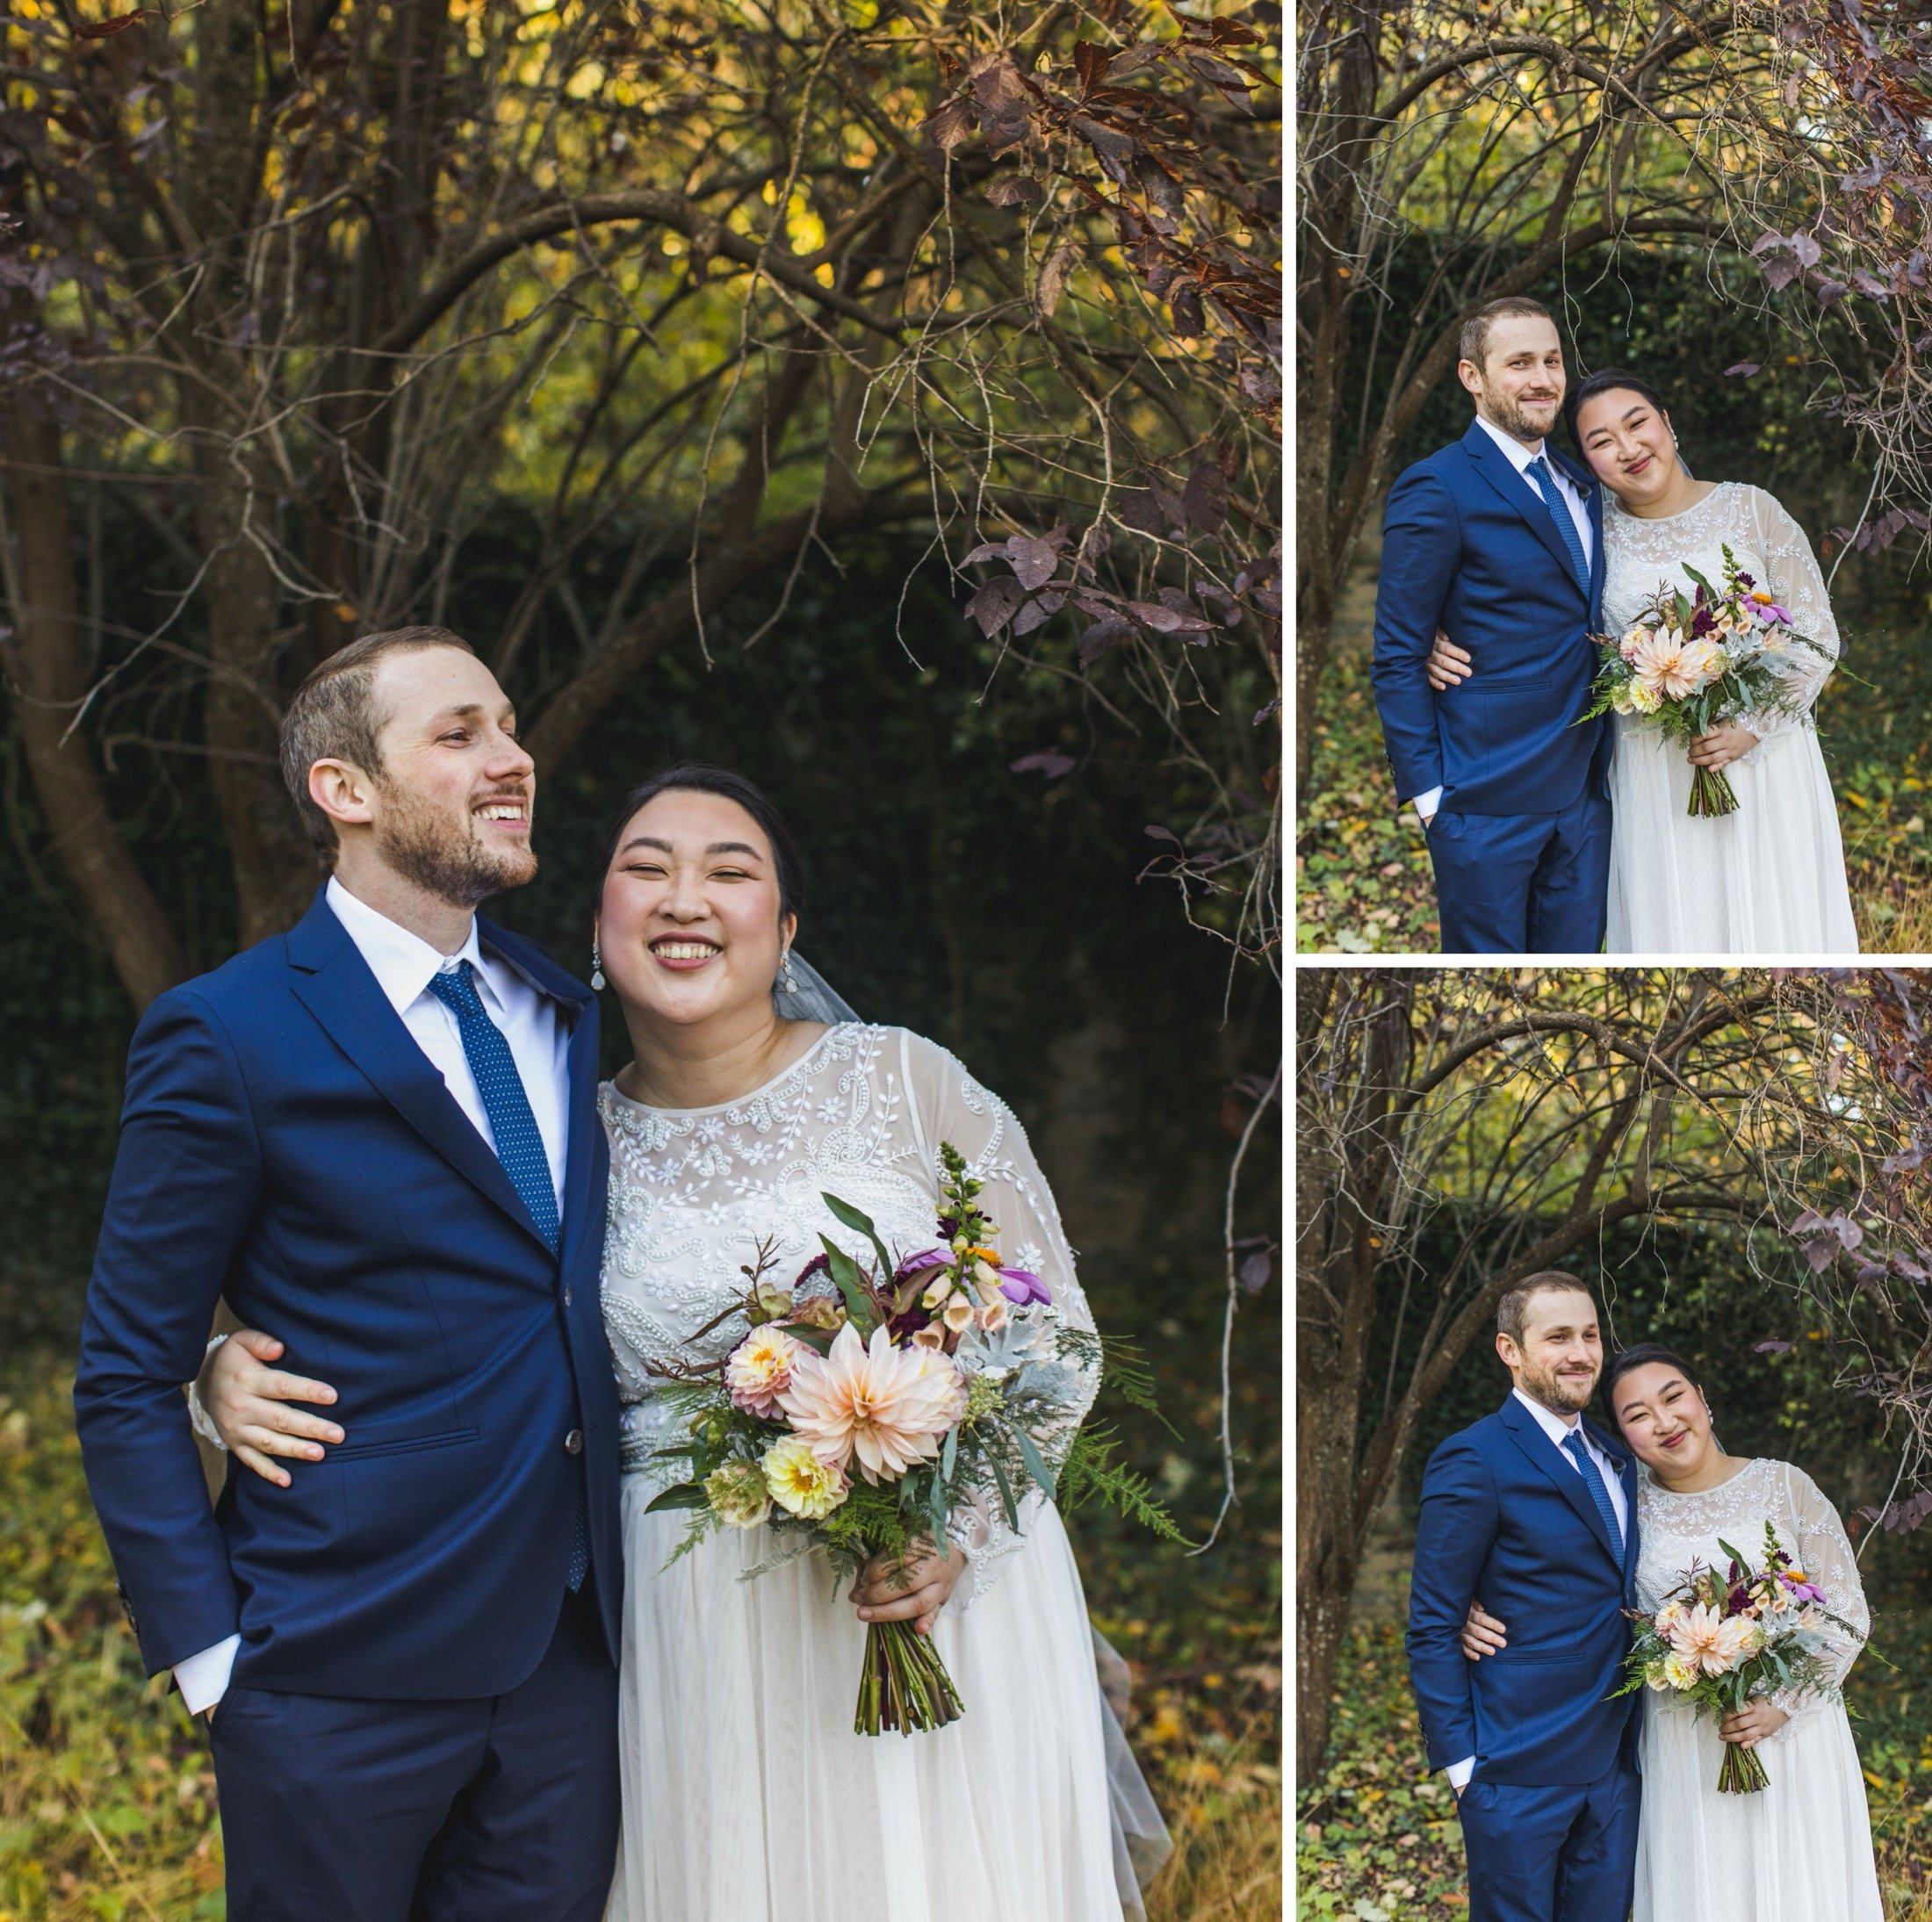 A grid of photos of Oki and Adam, smiling in wedding attire.